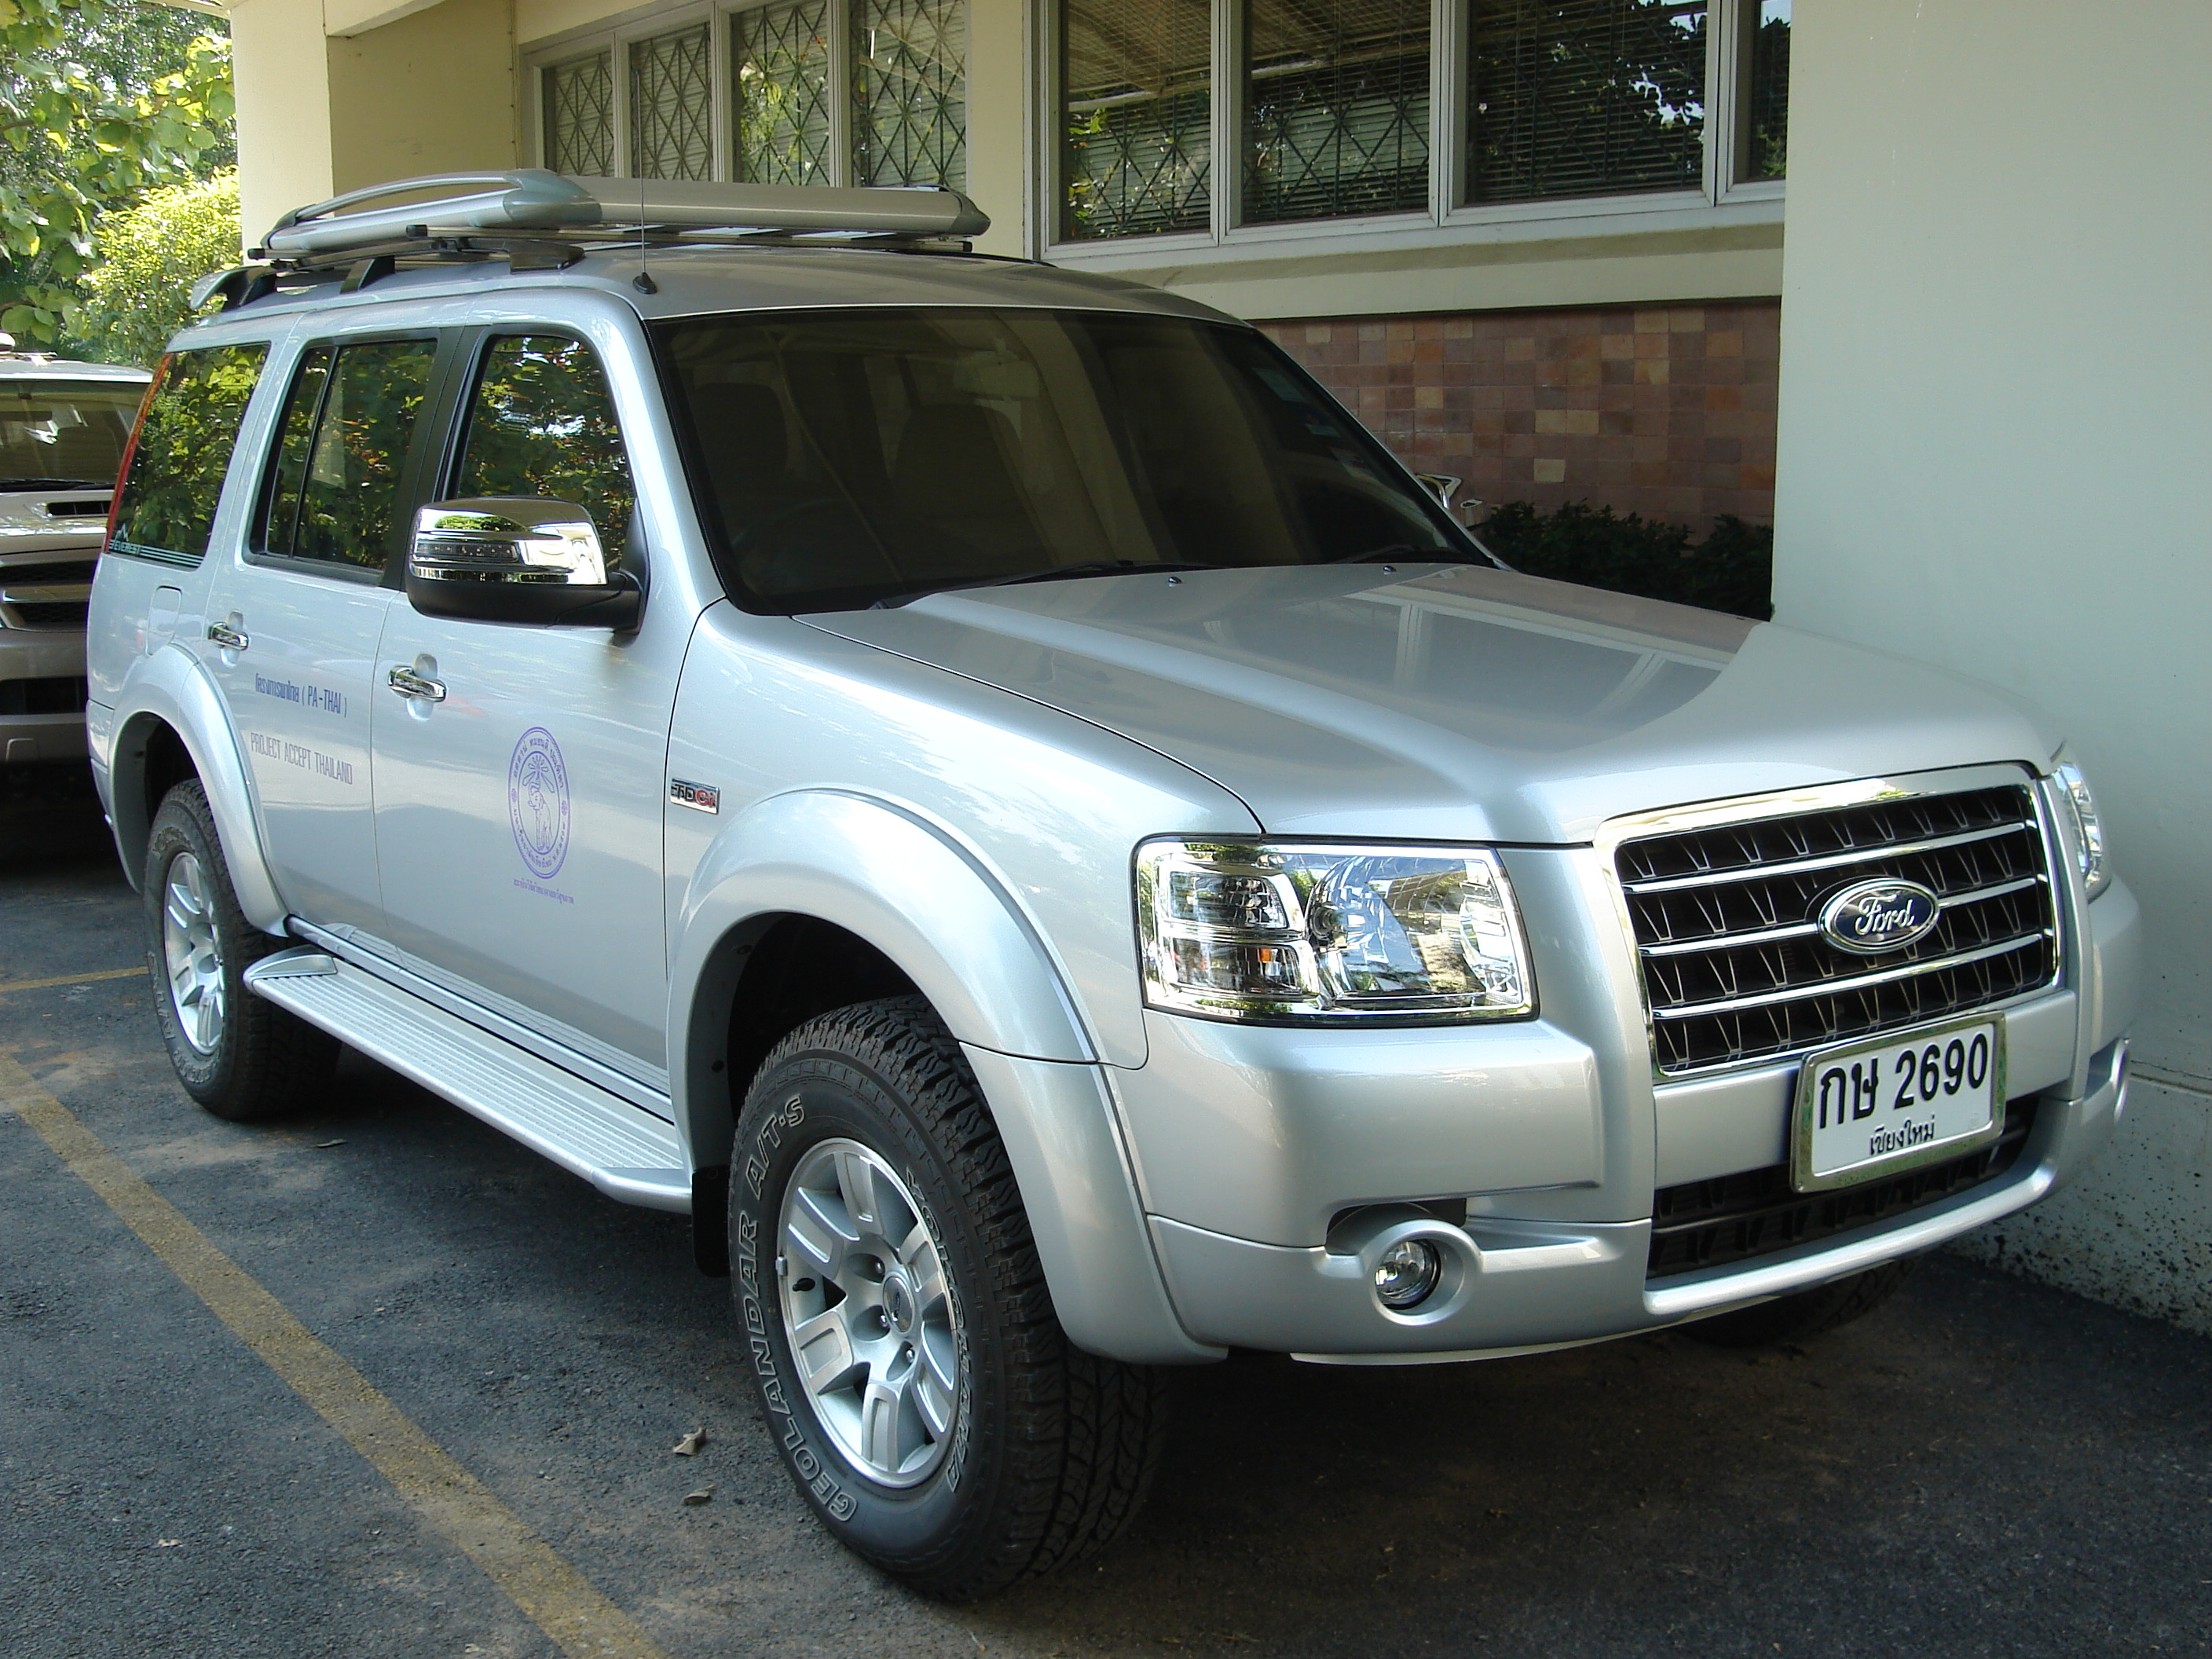 Ford Everest 2008 foto - 3